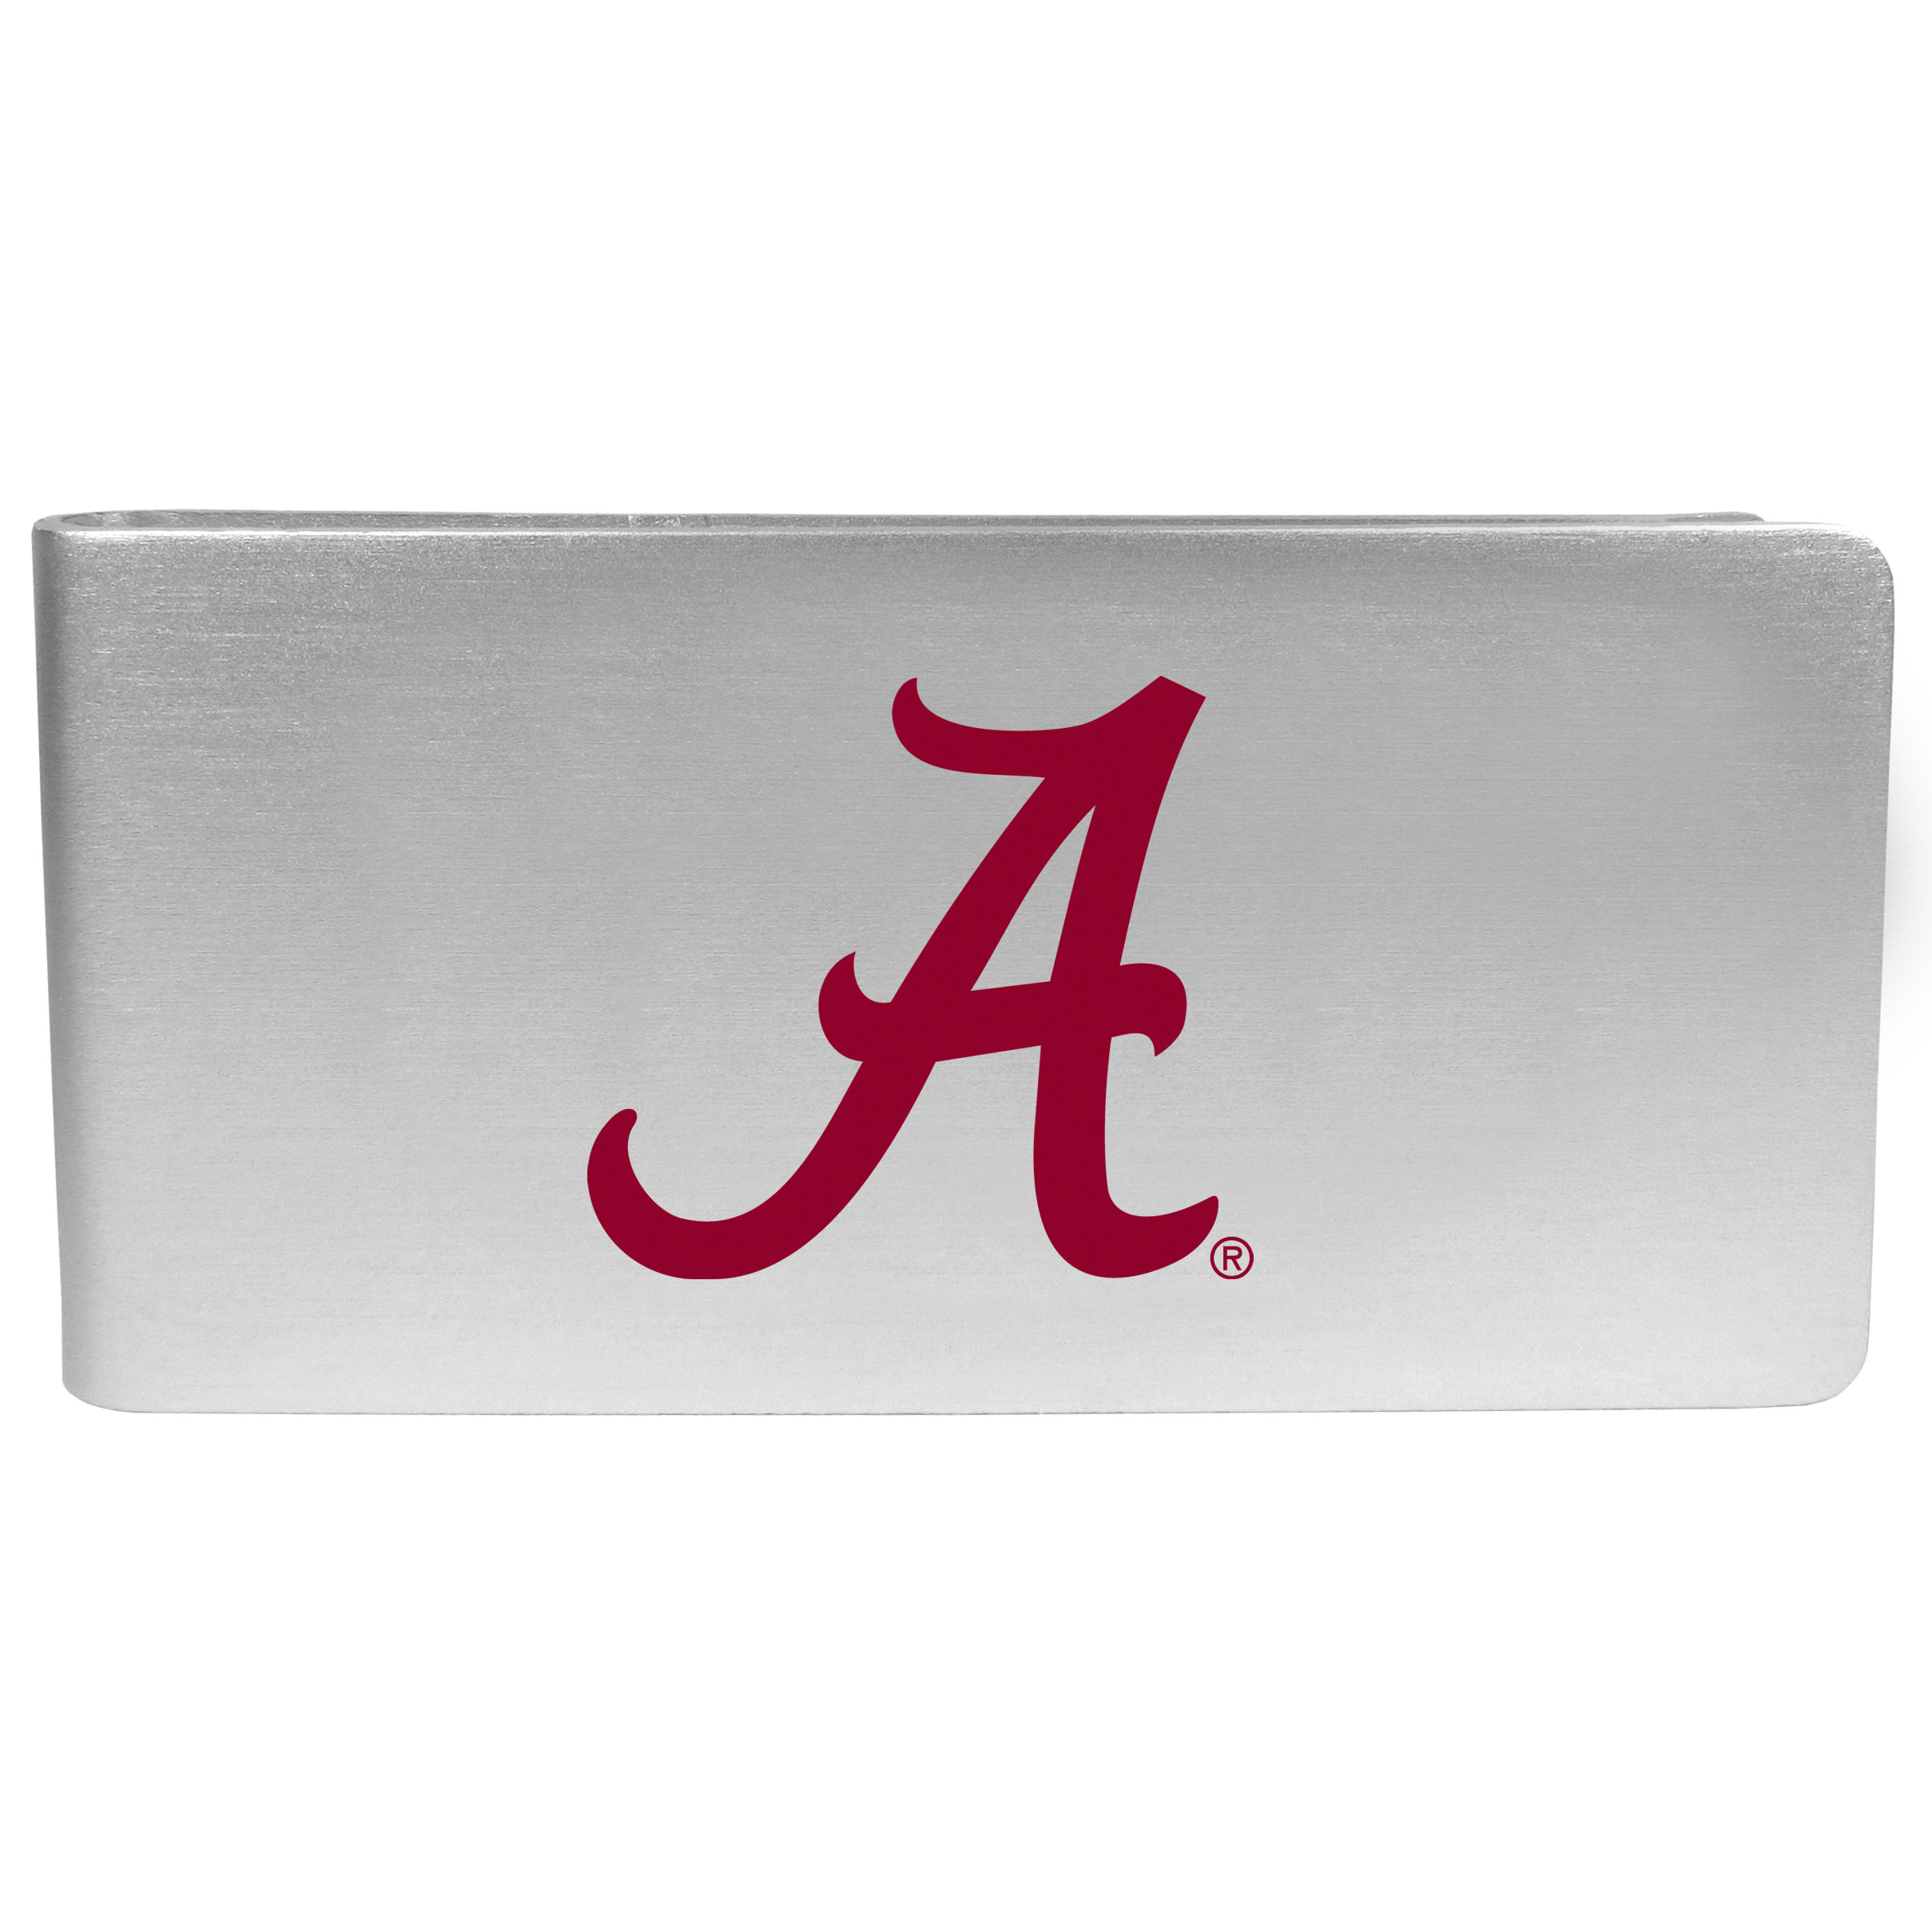 Alabama Crimson Tide Logo Money Clip - Our brushed metal money clip has classic style and functionality. The attractive clip features the Alabama Crimson Tide logo expertly printed on front.